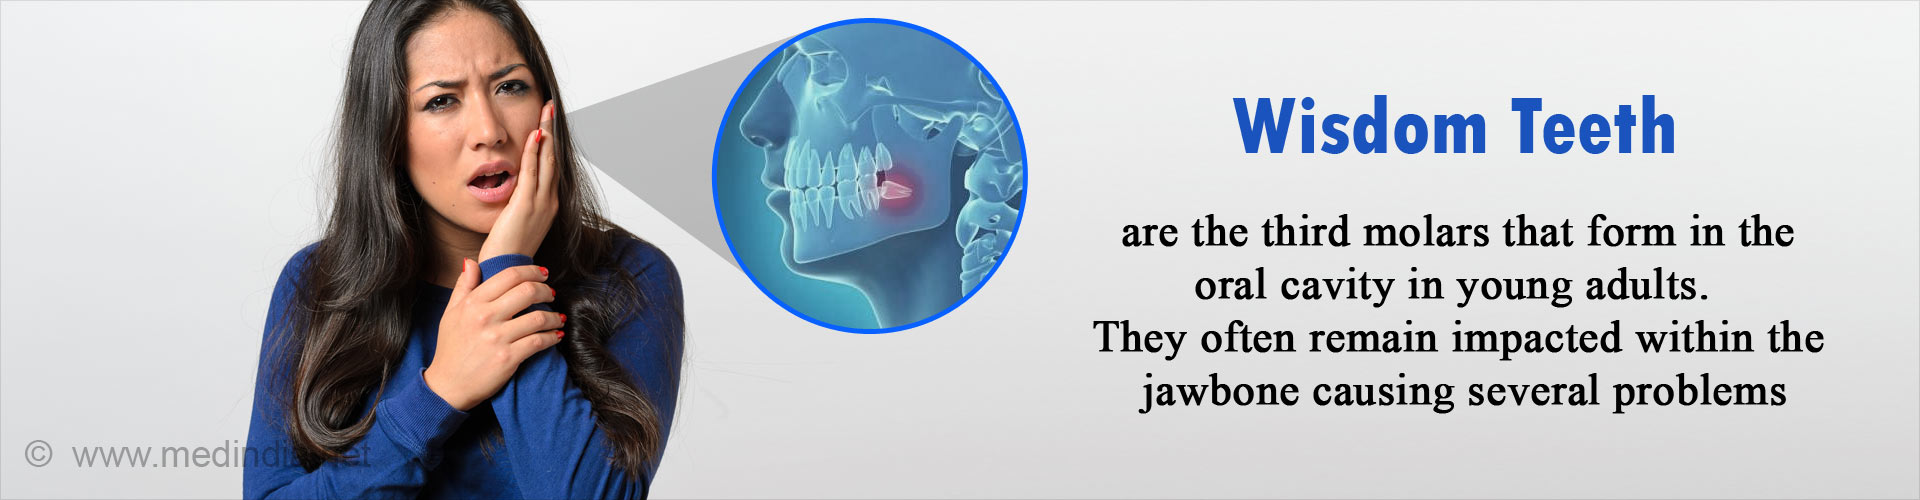 Wisdom Teeth - Symptoms, Signs, Complications & Treatment